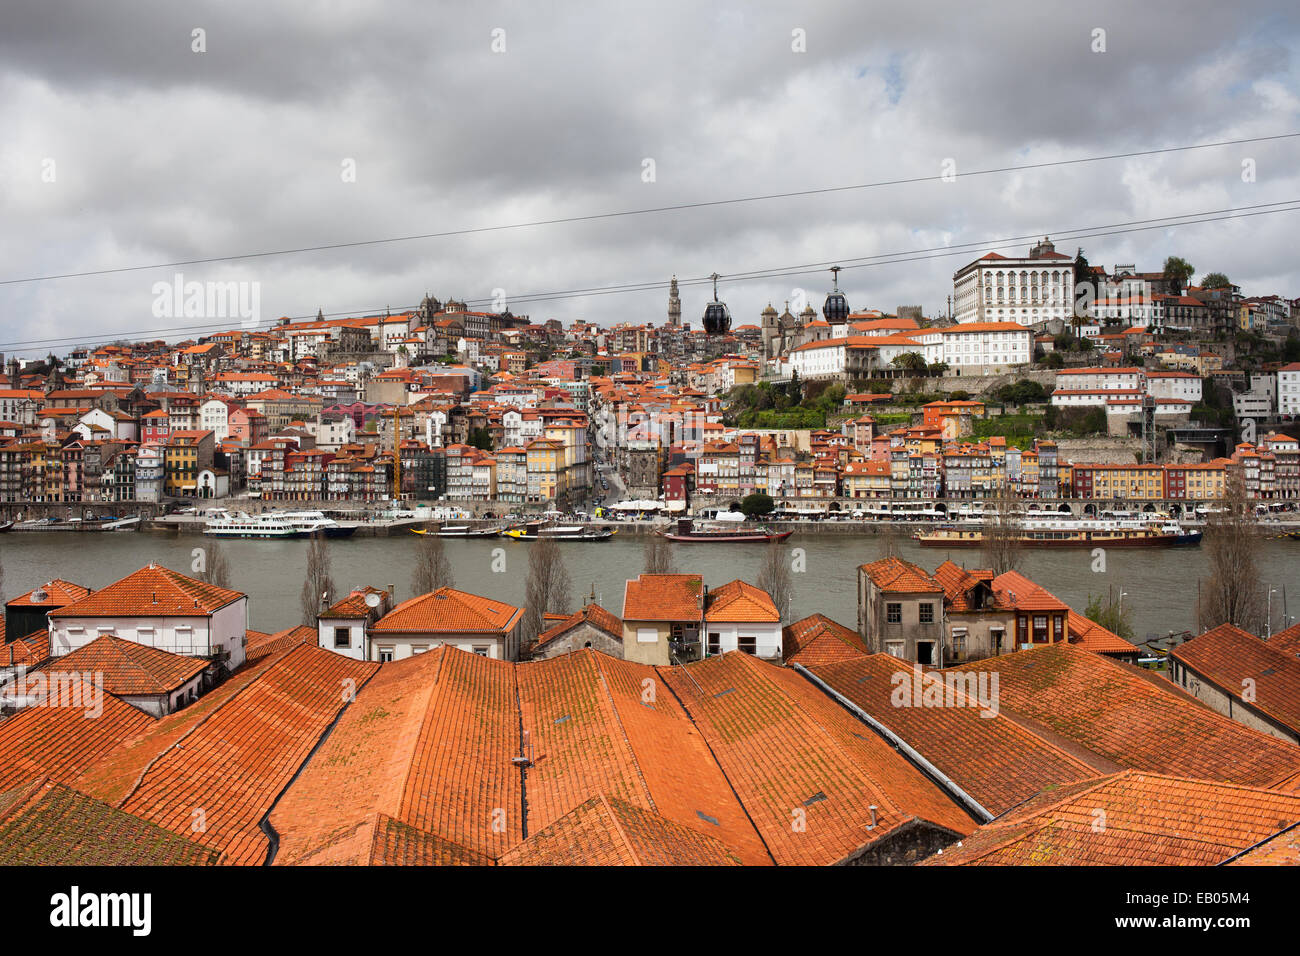 City of Porto in Portugal, view over wine cellars rooftops towards historic city centre along Douro river. Stock Photo